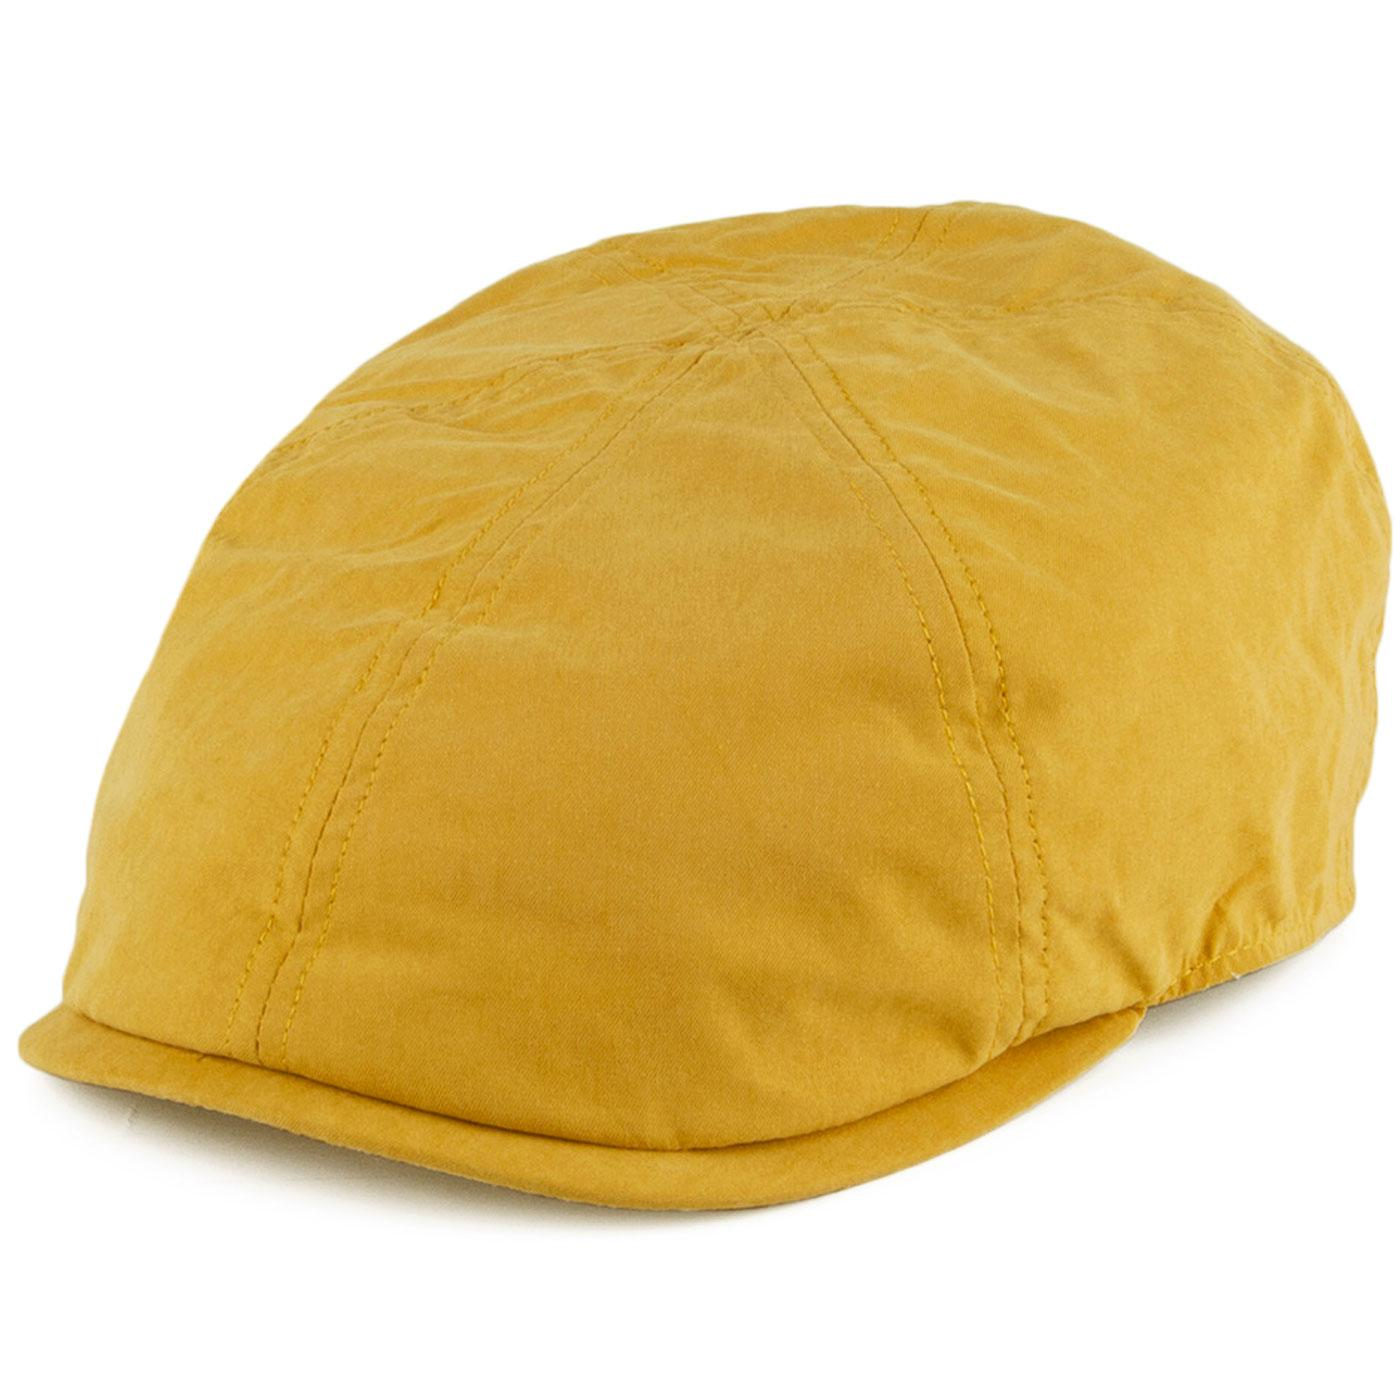 FAILSWORTH Micro 6 Panel Retro Newsboy Cap MUSTARD